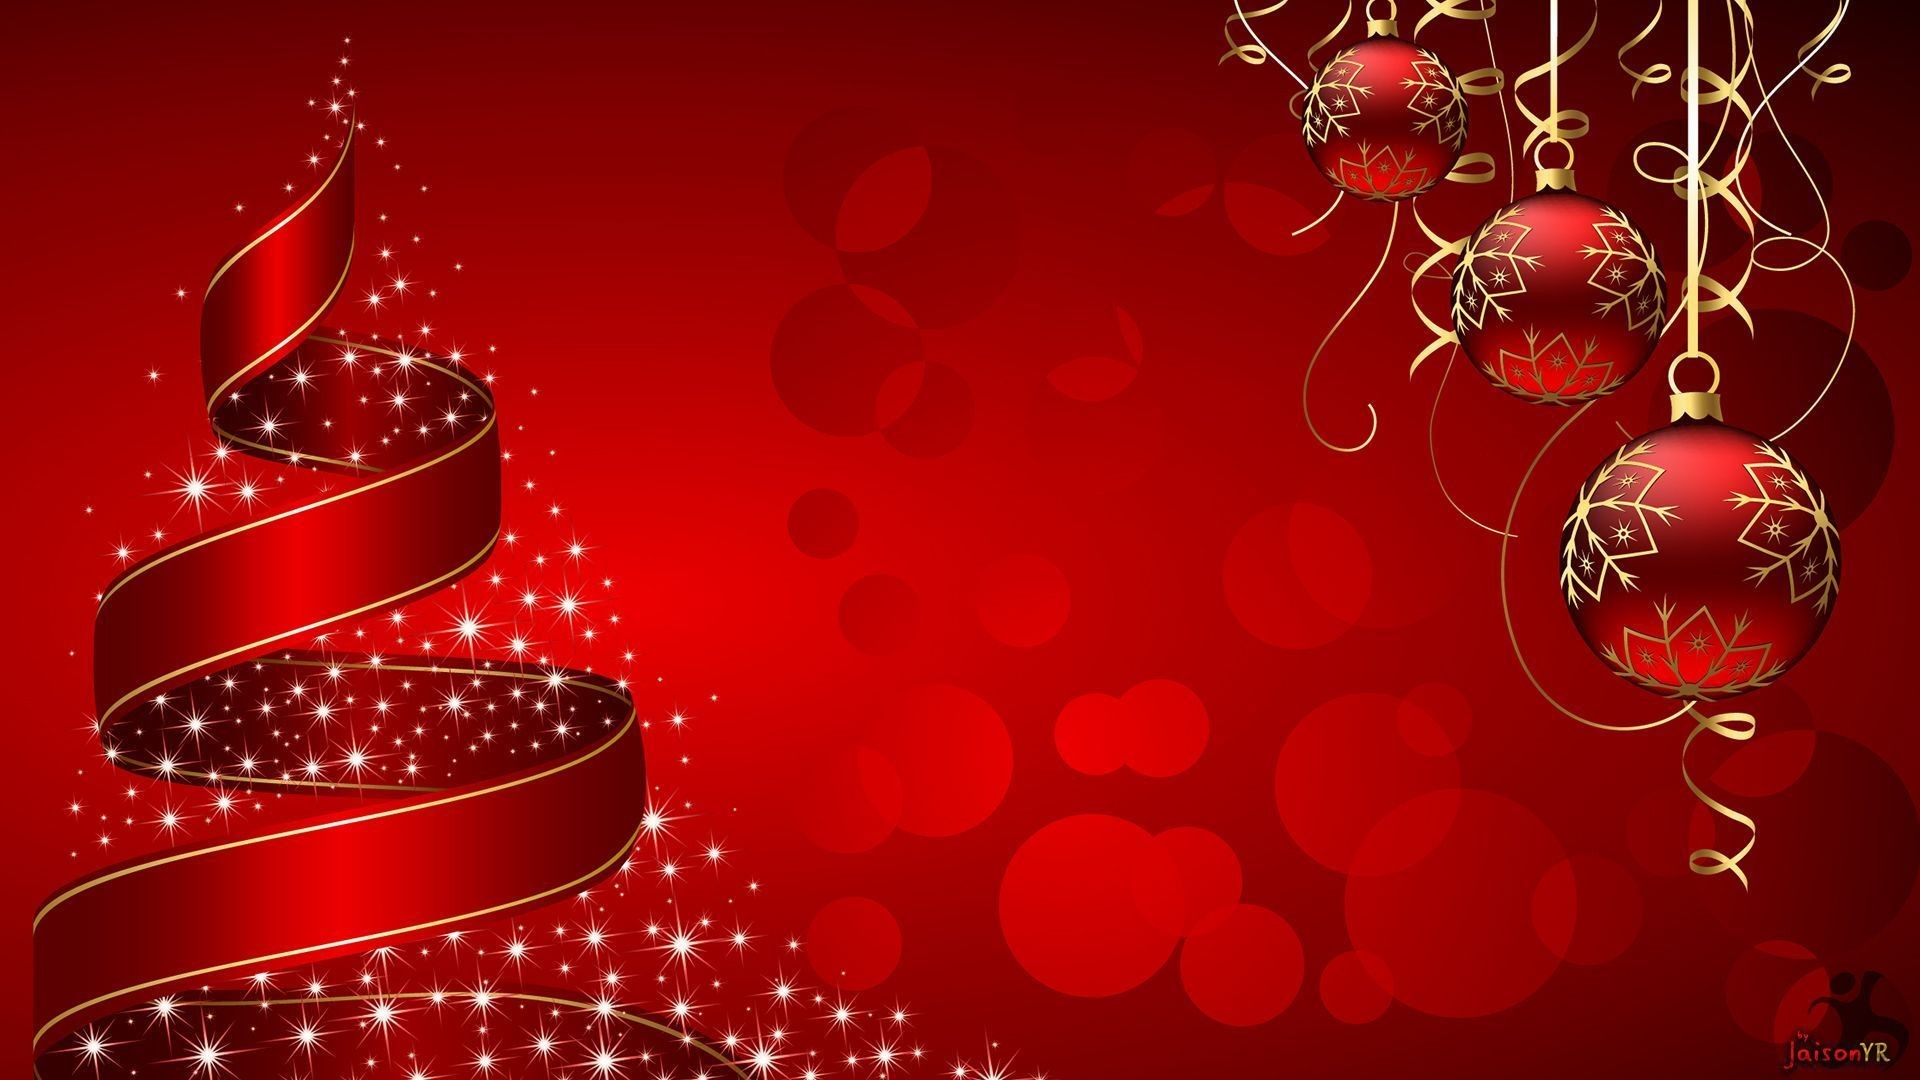 christmas wallpapers for desktop 63 pictures christmas wallpapers for desktop 63